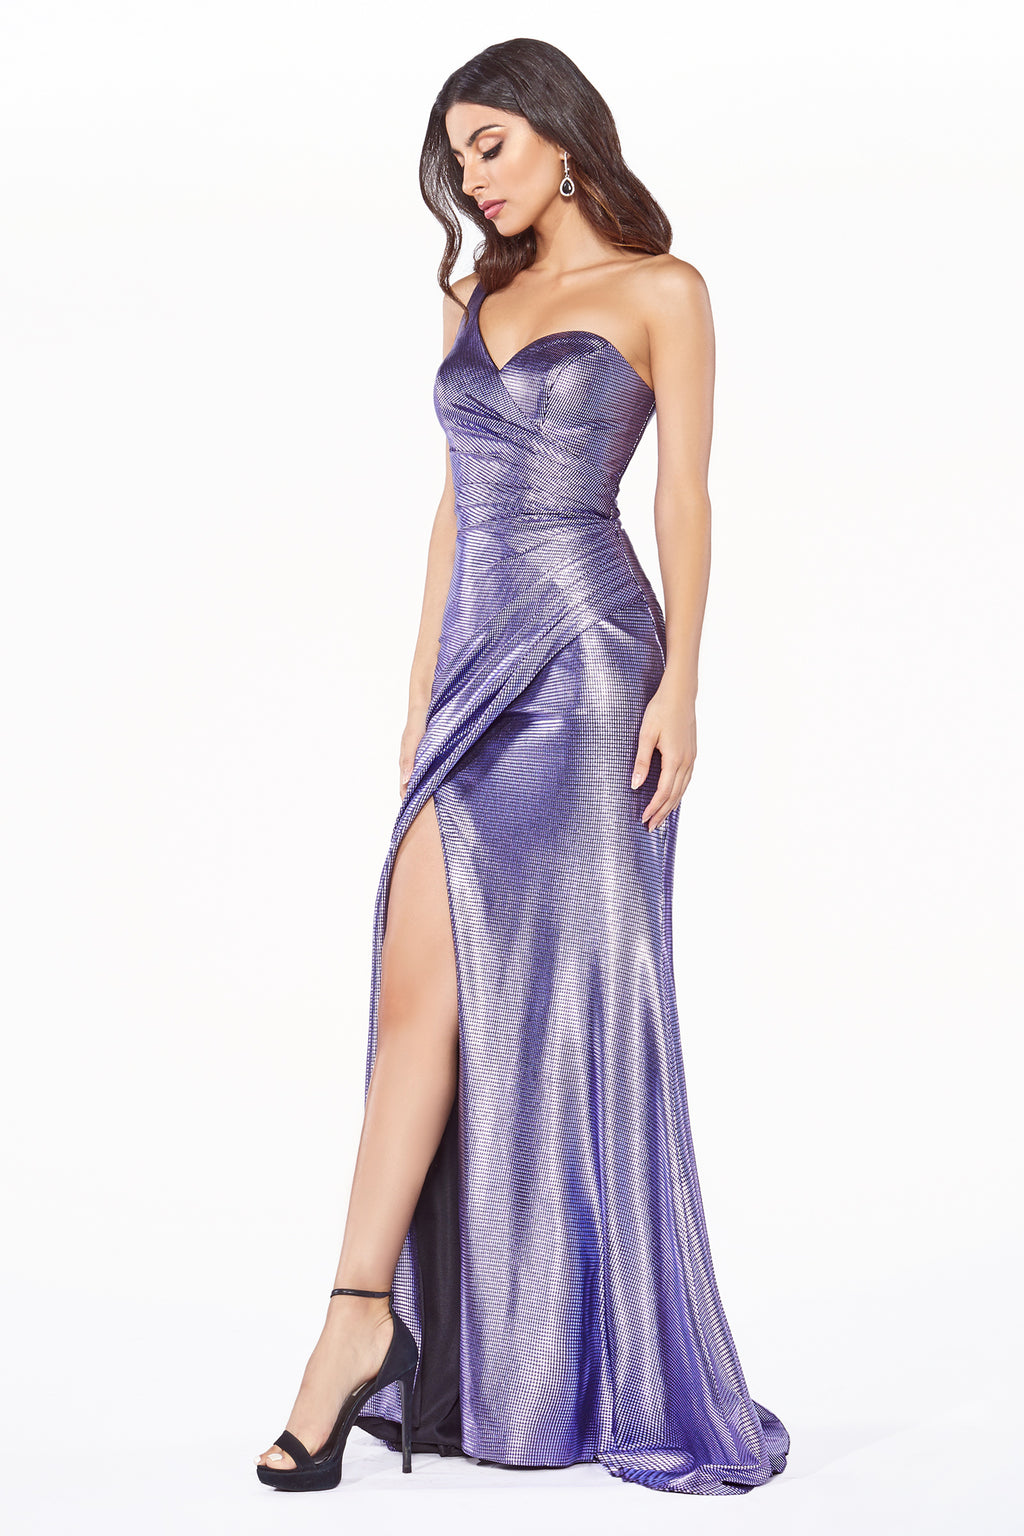 One Shoulder Slit Leg Dress Style #LAKC894 | Prom 2020